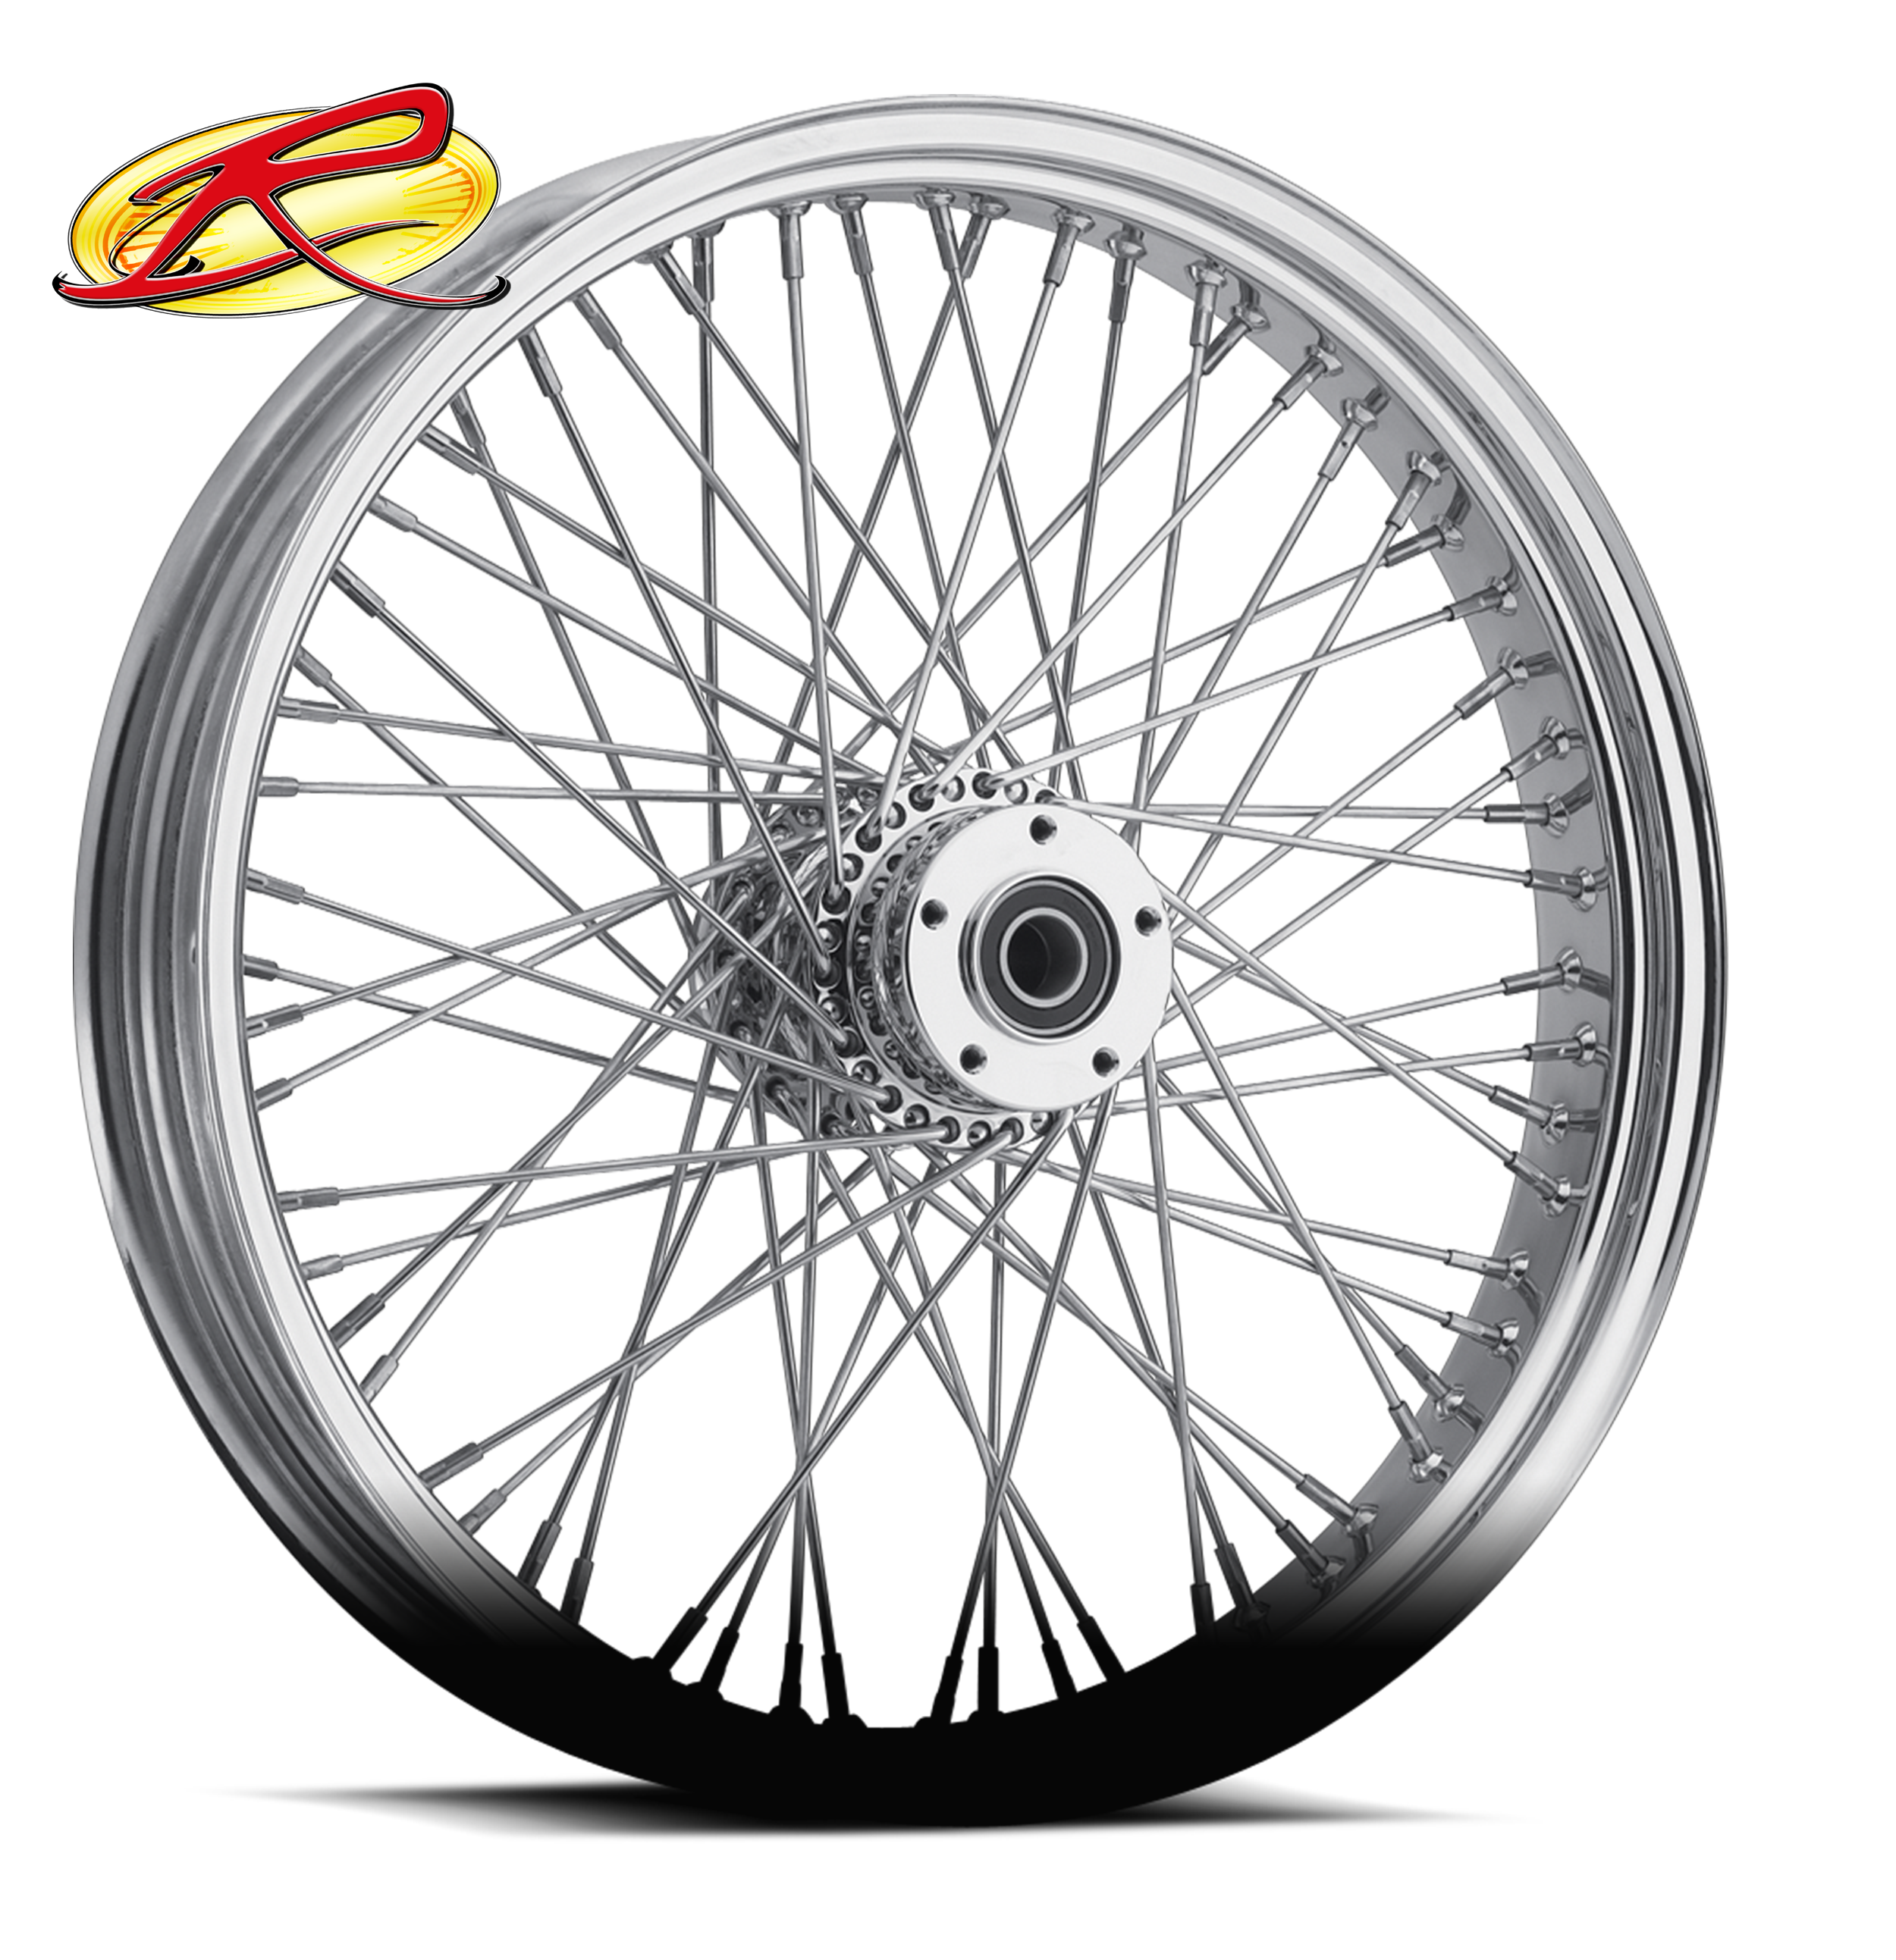 60 Spoke Motorcycle Wheels